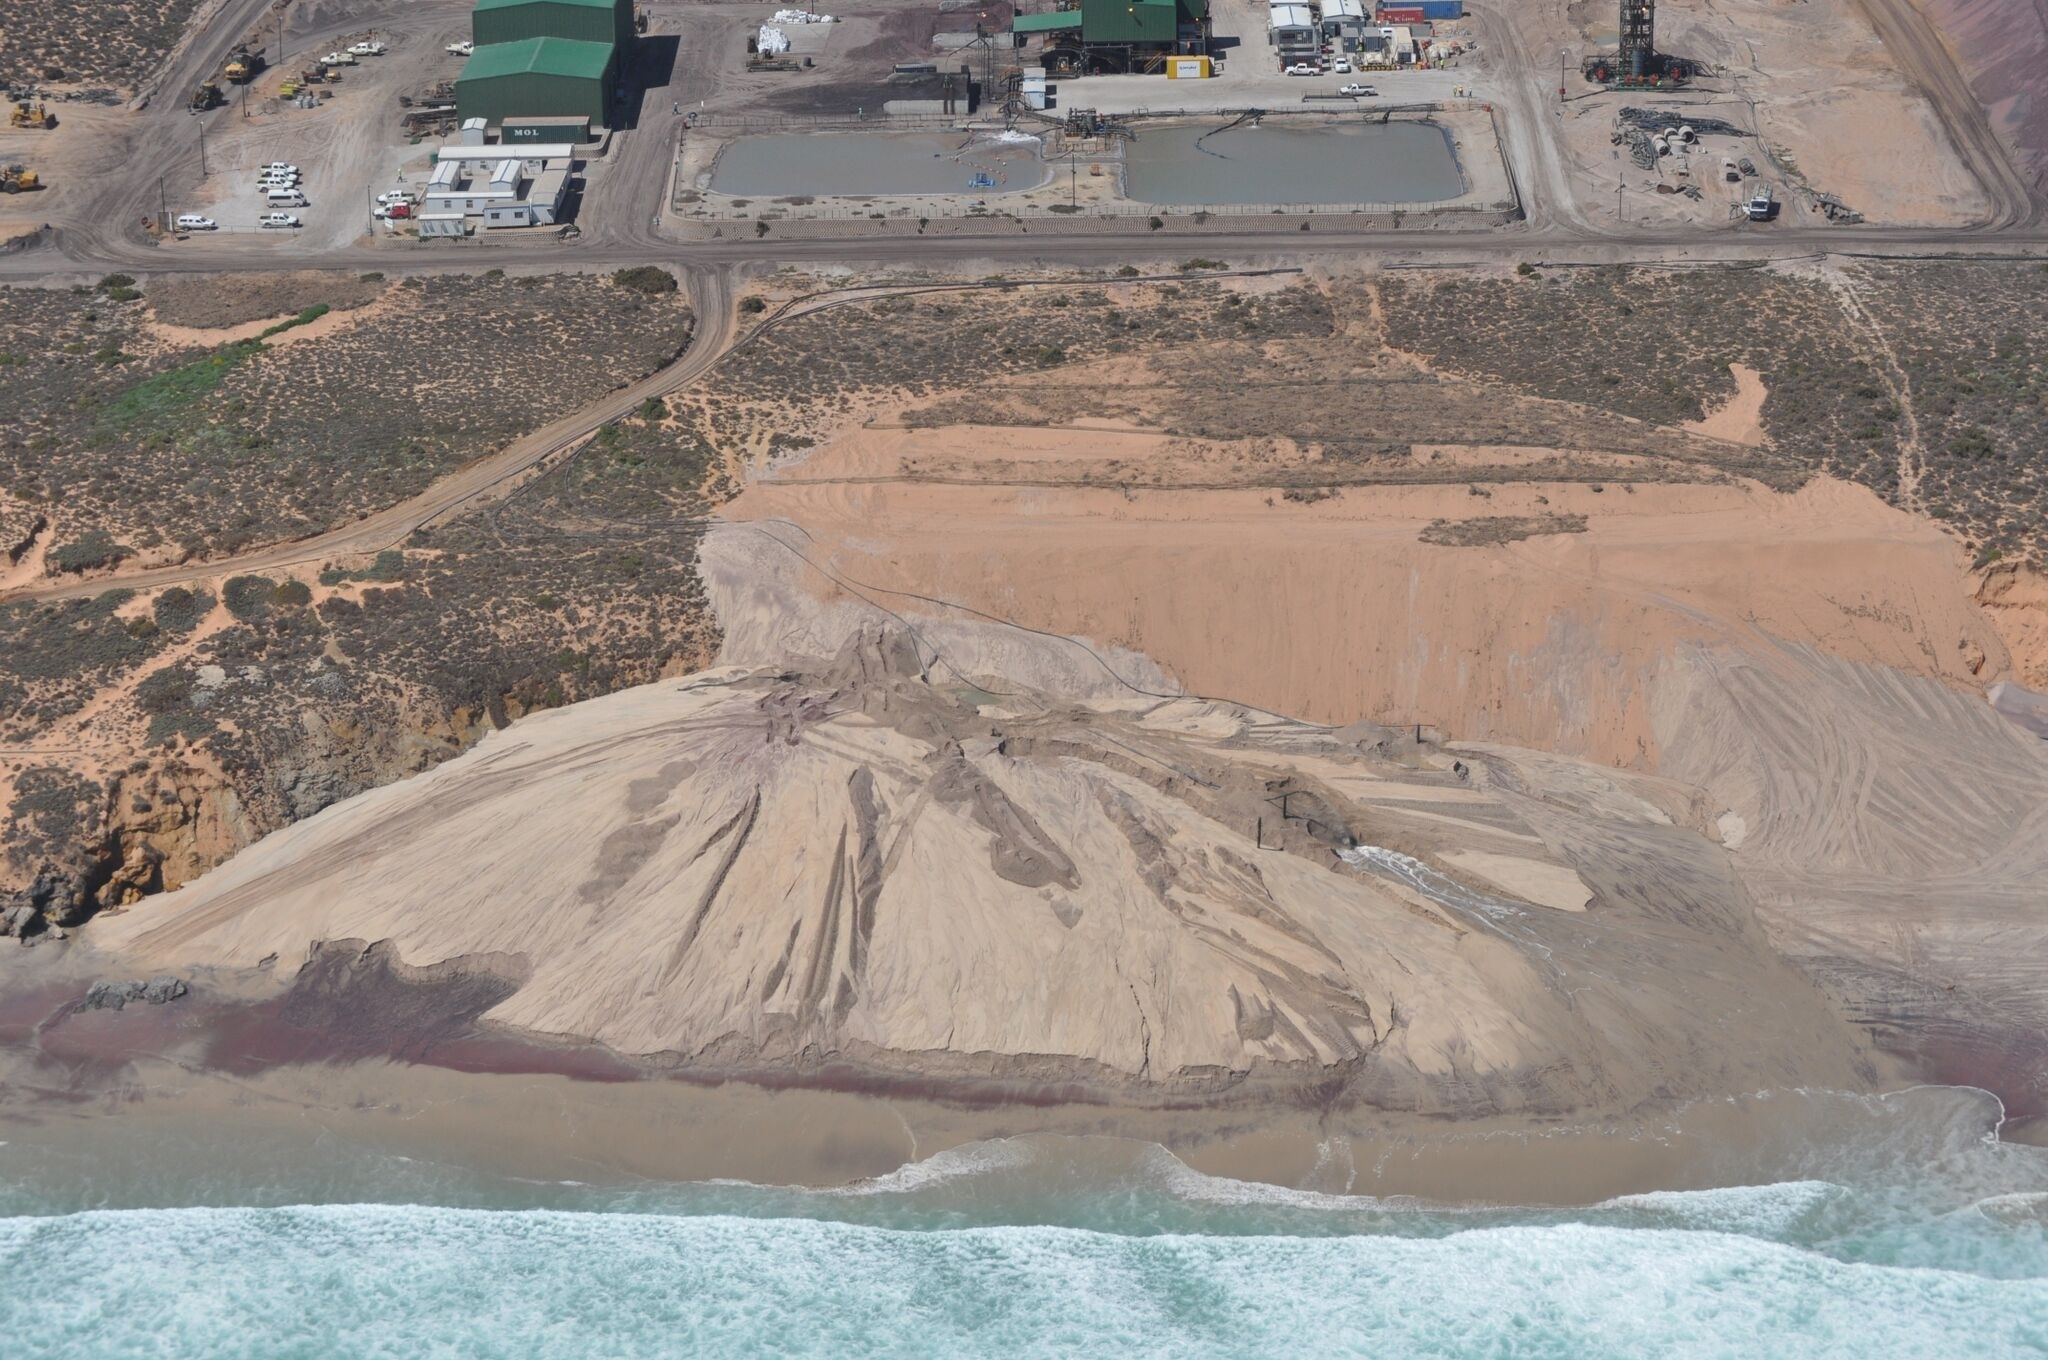 MRC, the company which wants to mine in Mbizana, already runs a controversial open cast mine north of Cape Town.